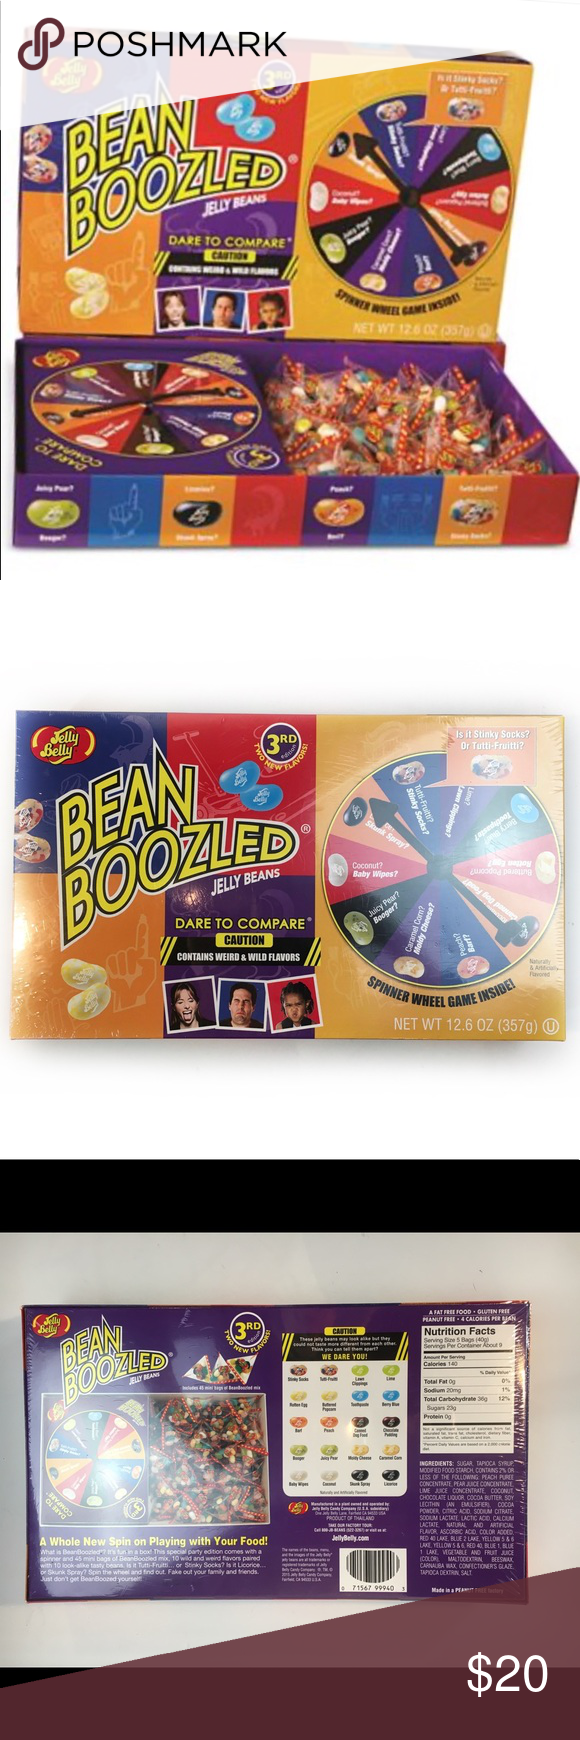 New Jelly Belly Bean Boozled 3rd Ed Sealed Game Jelly Belly Beans Jelly Belly Bean Boozled Jelly Belly